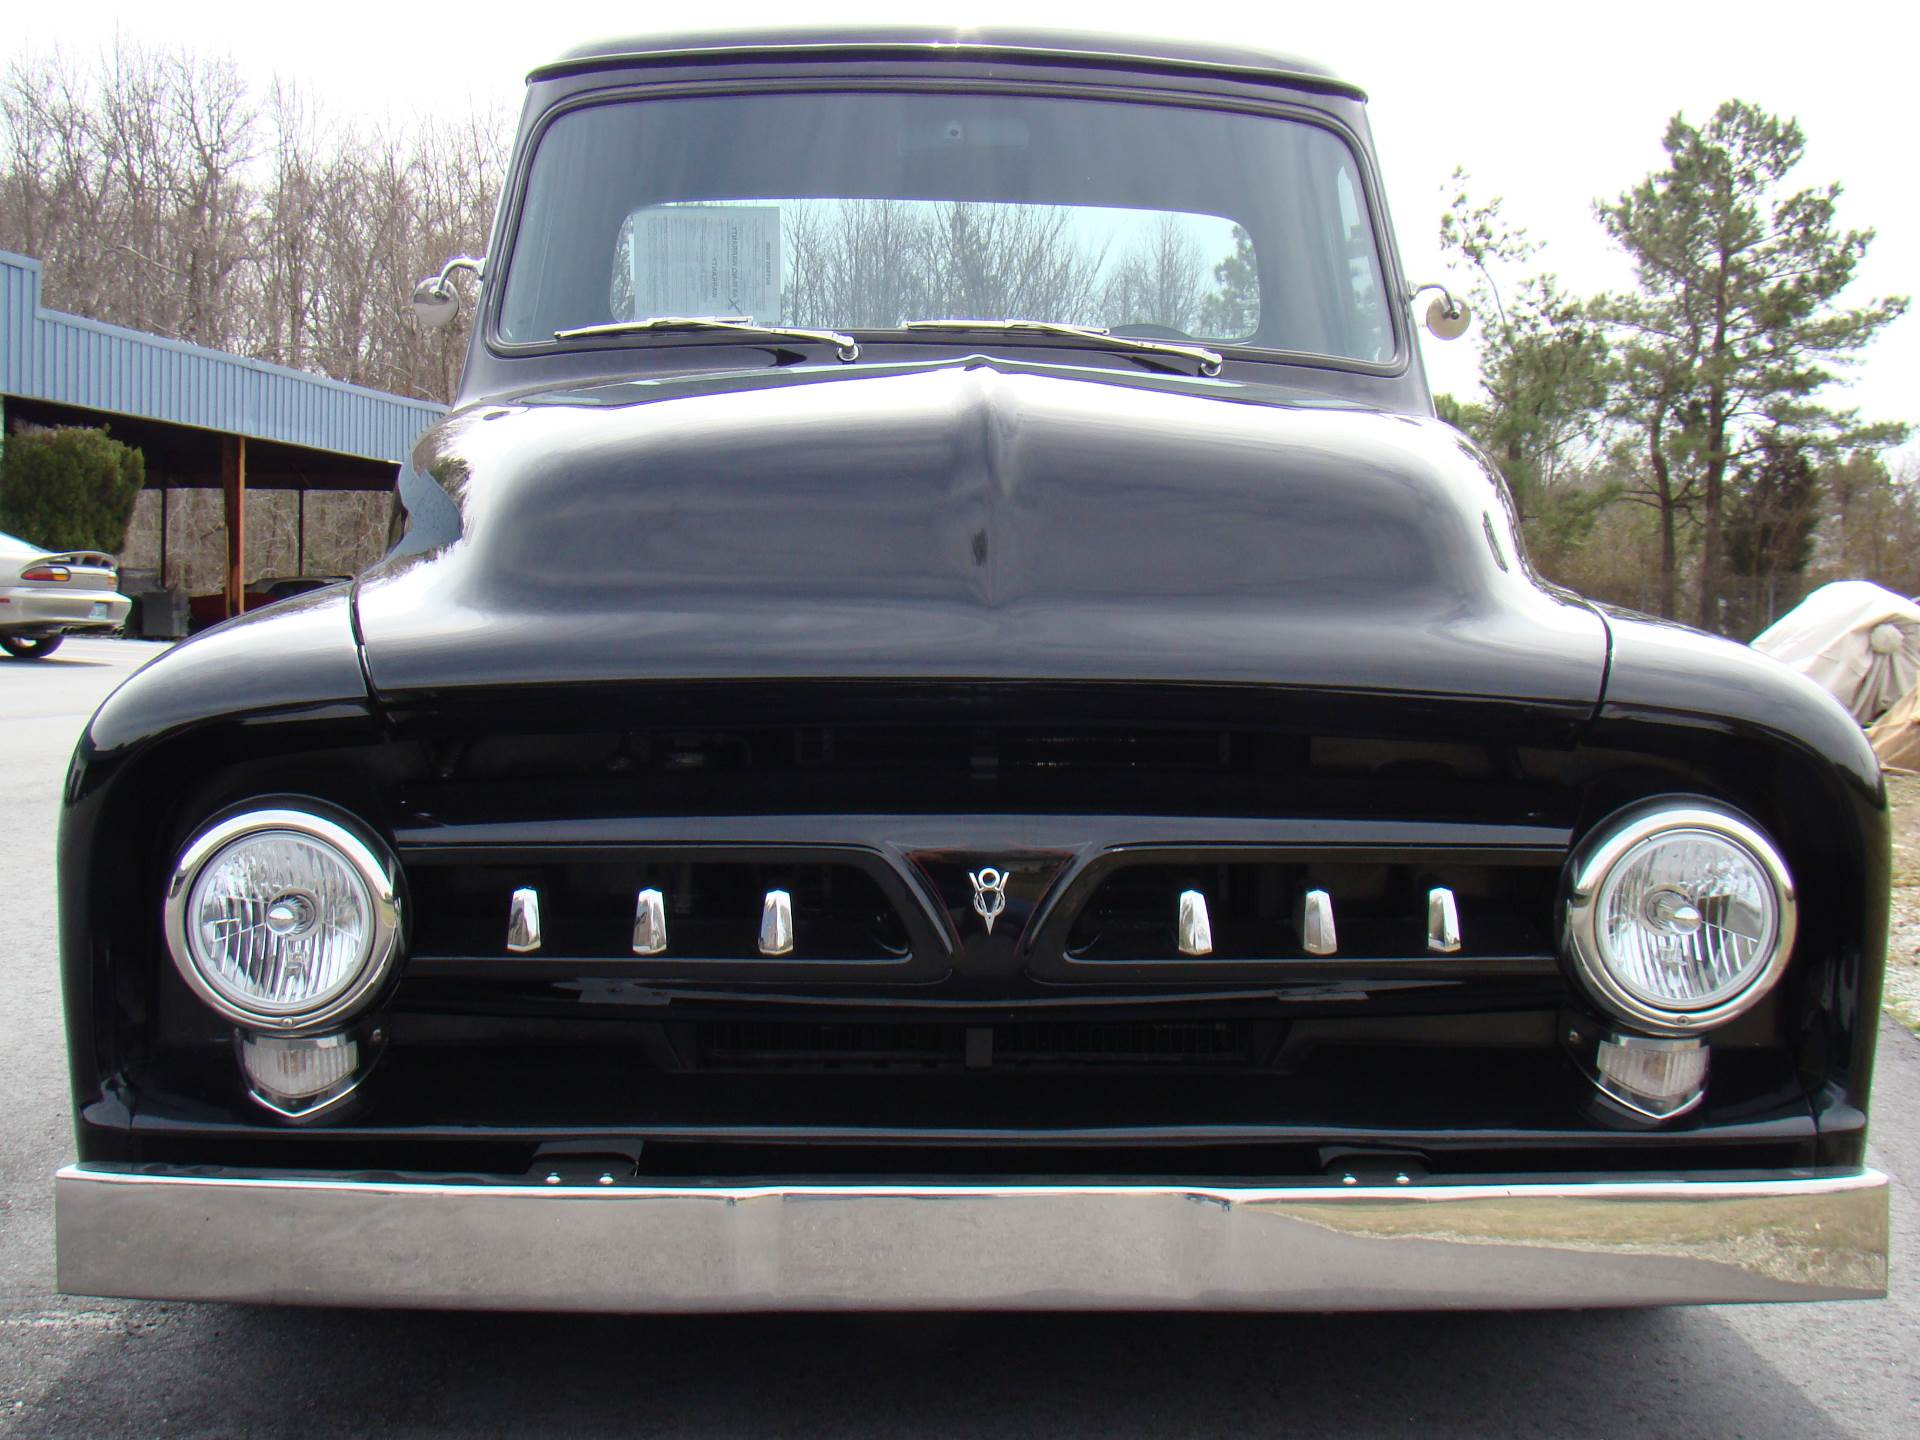 1953 Ford F100 in Hayes, Virginia - Photo 2